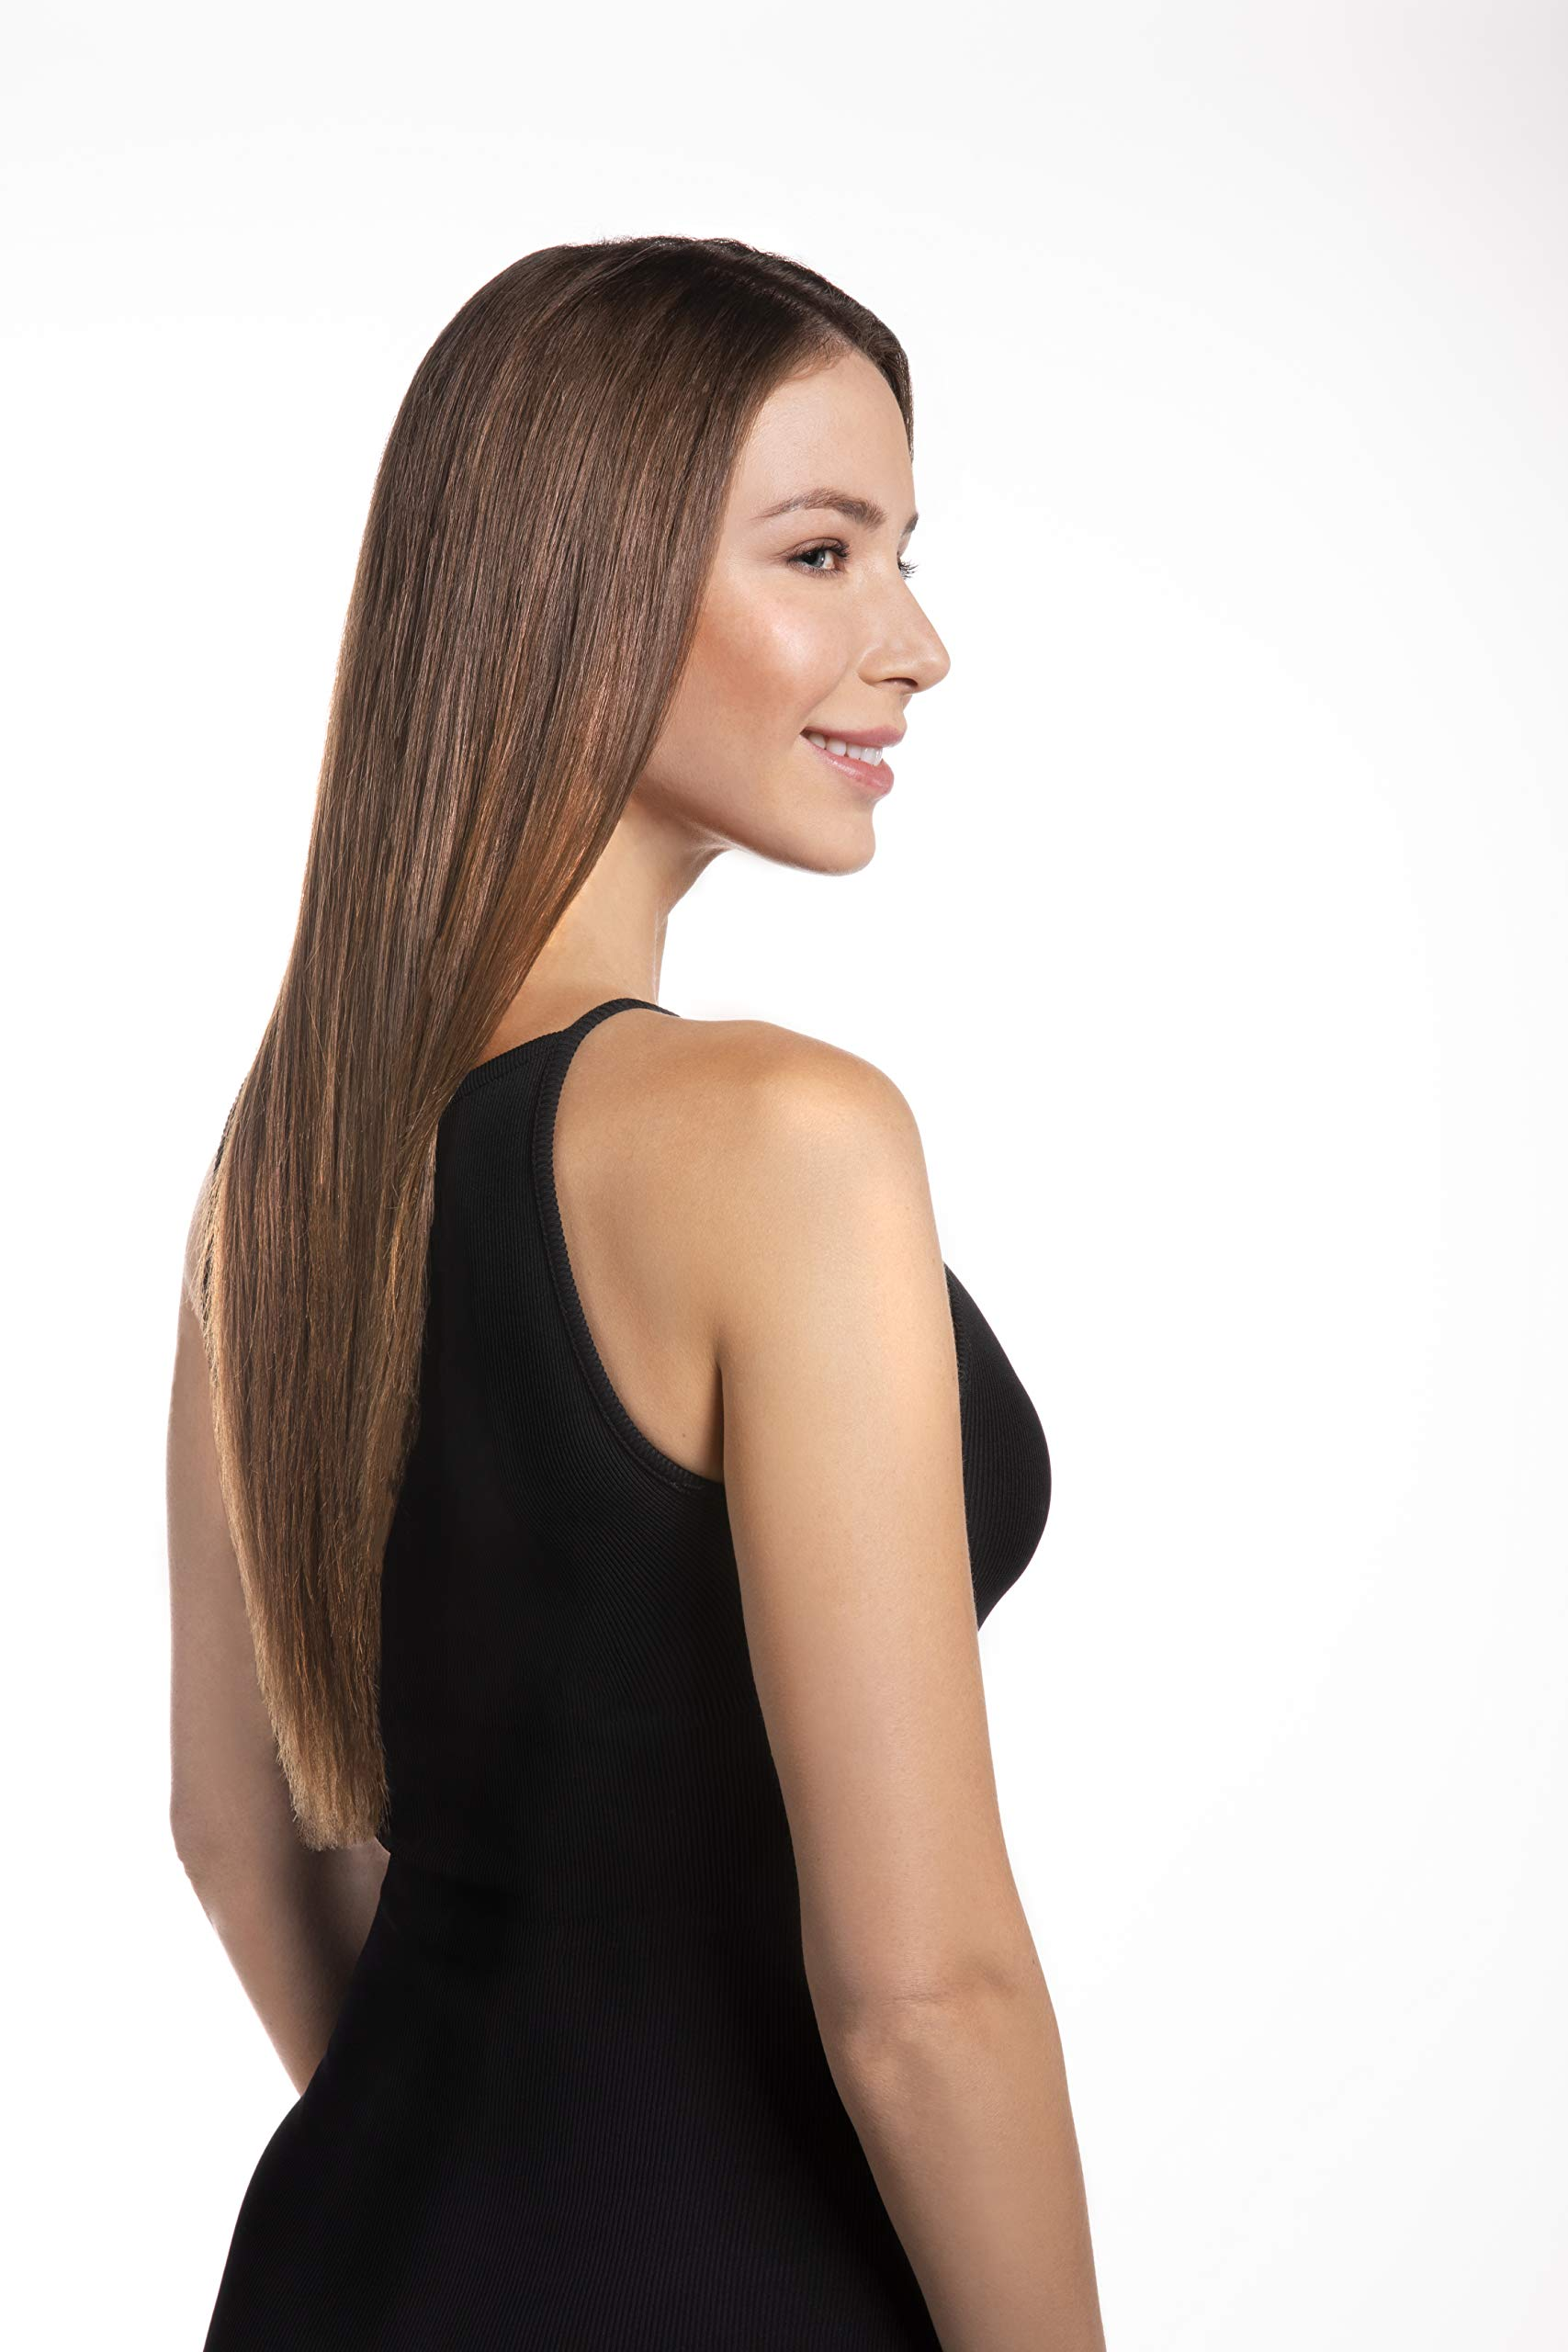 InStyler MAVEN Ceramic Blow Drying and Straightening Hot Air Brush by InStyler (Image #7)